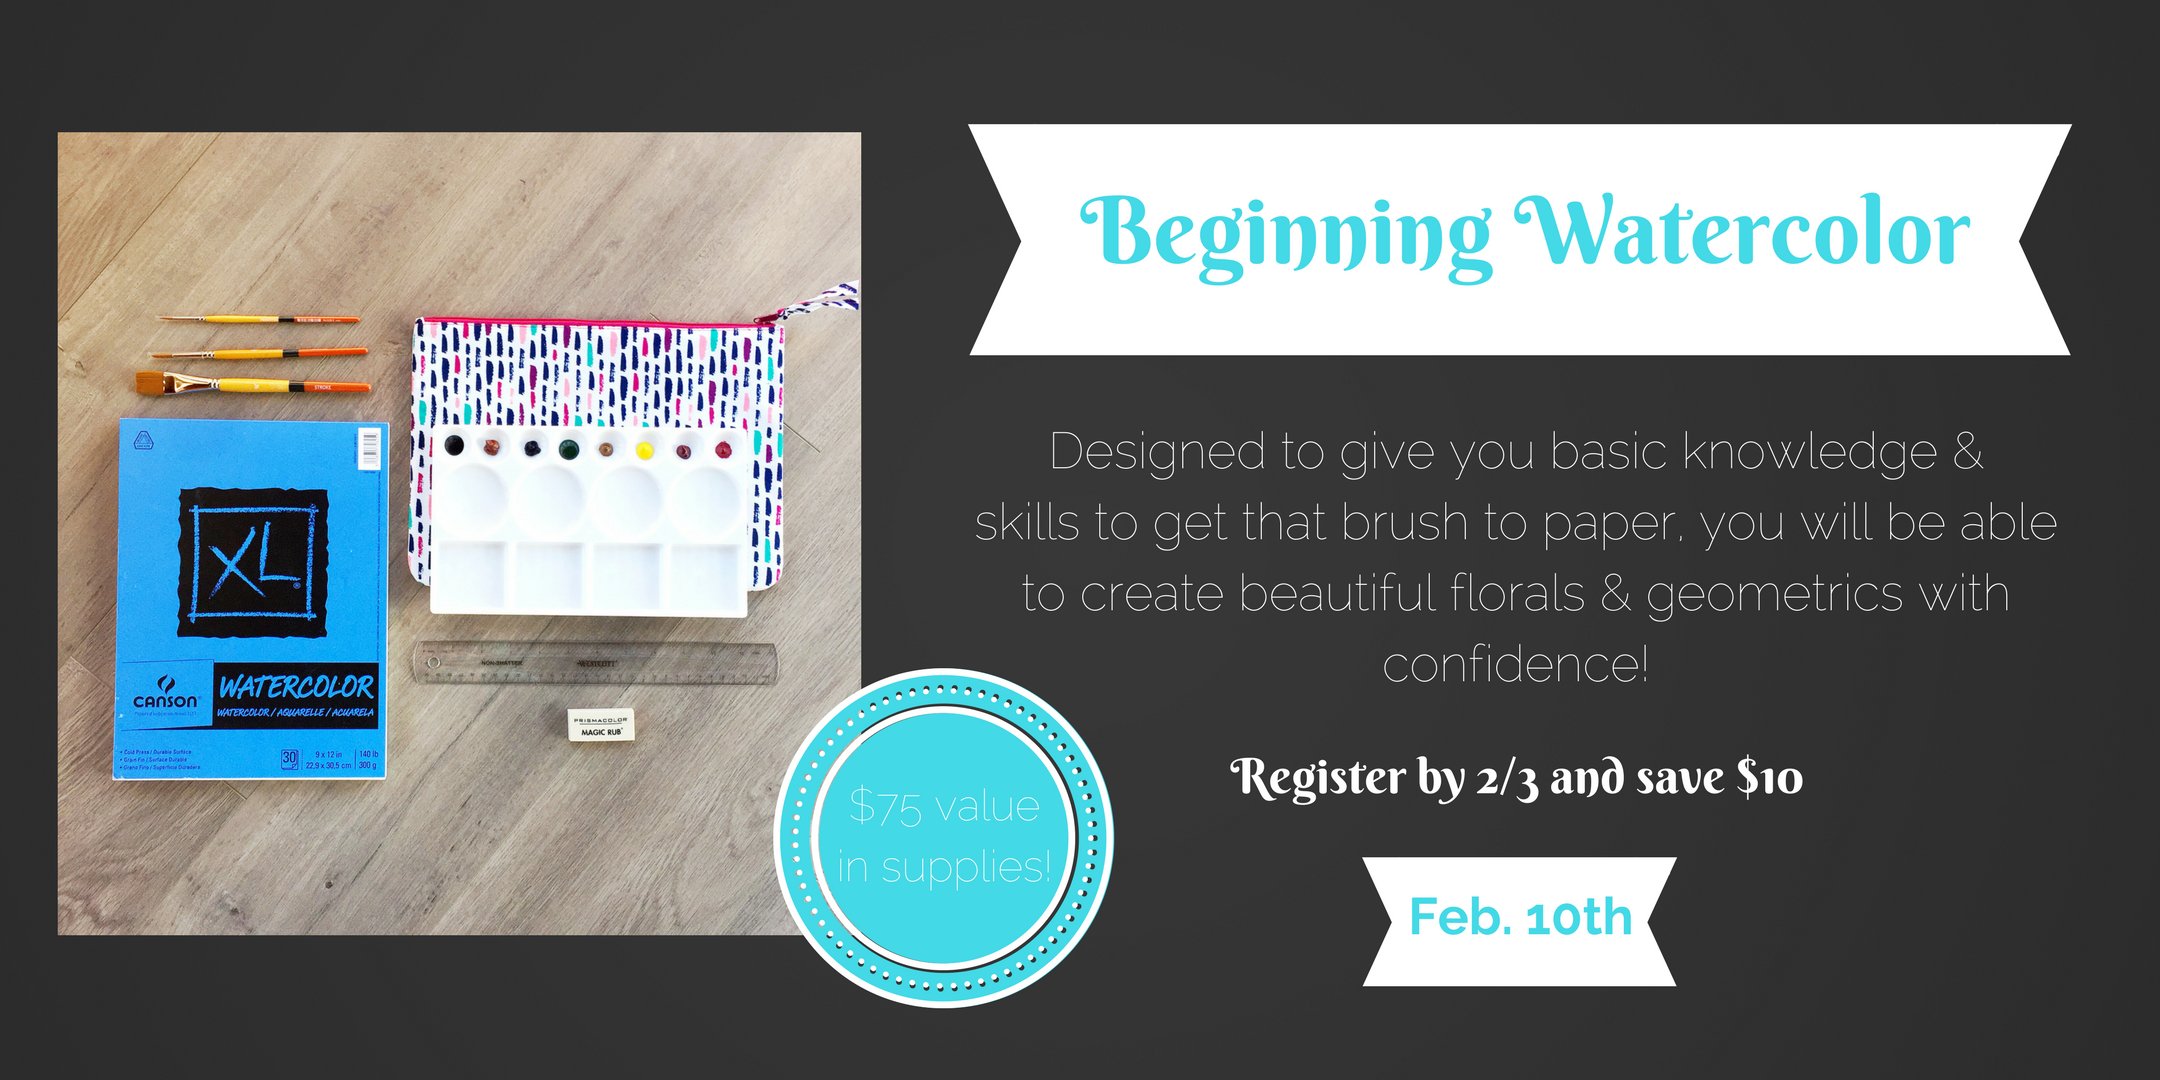 Beginning Watercolor Eventbrite Image.png